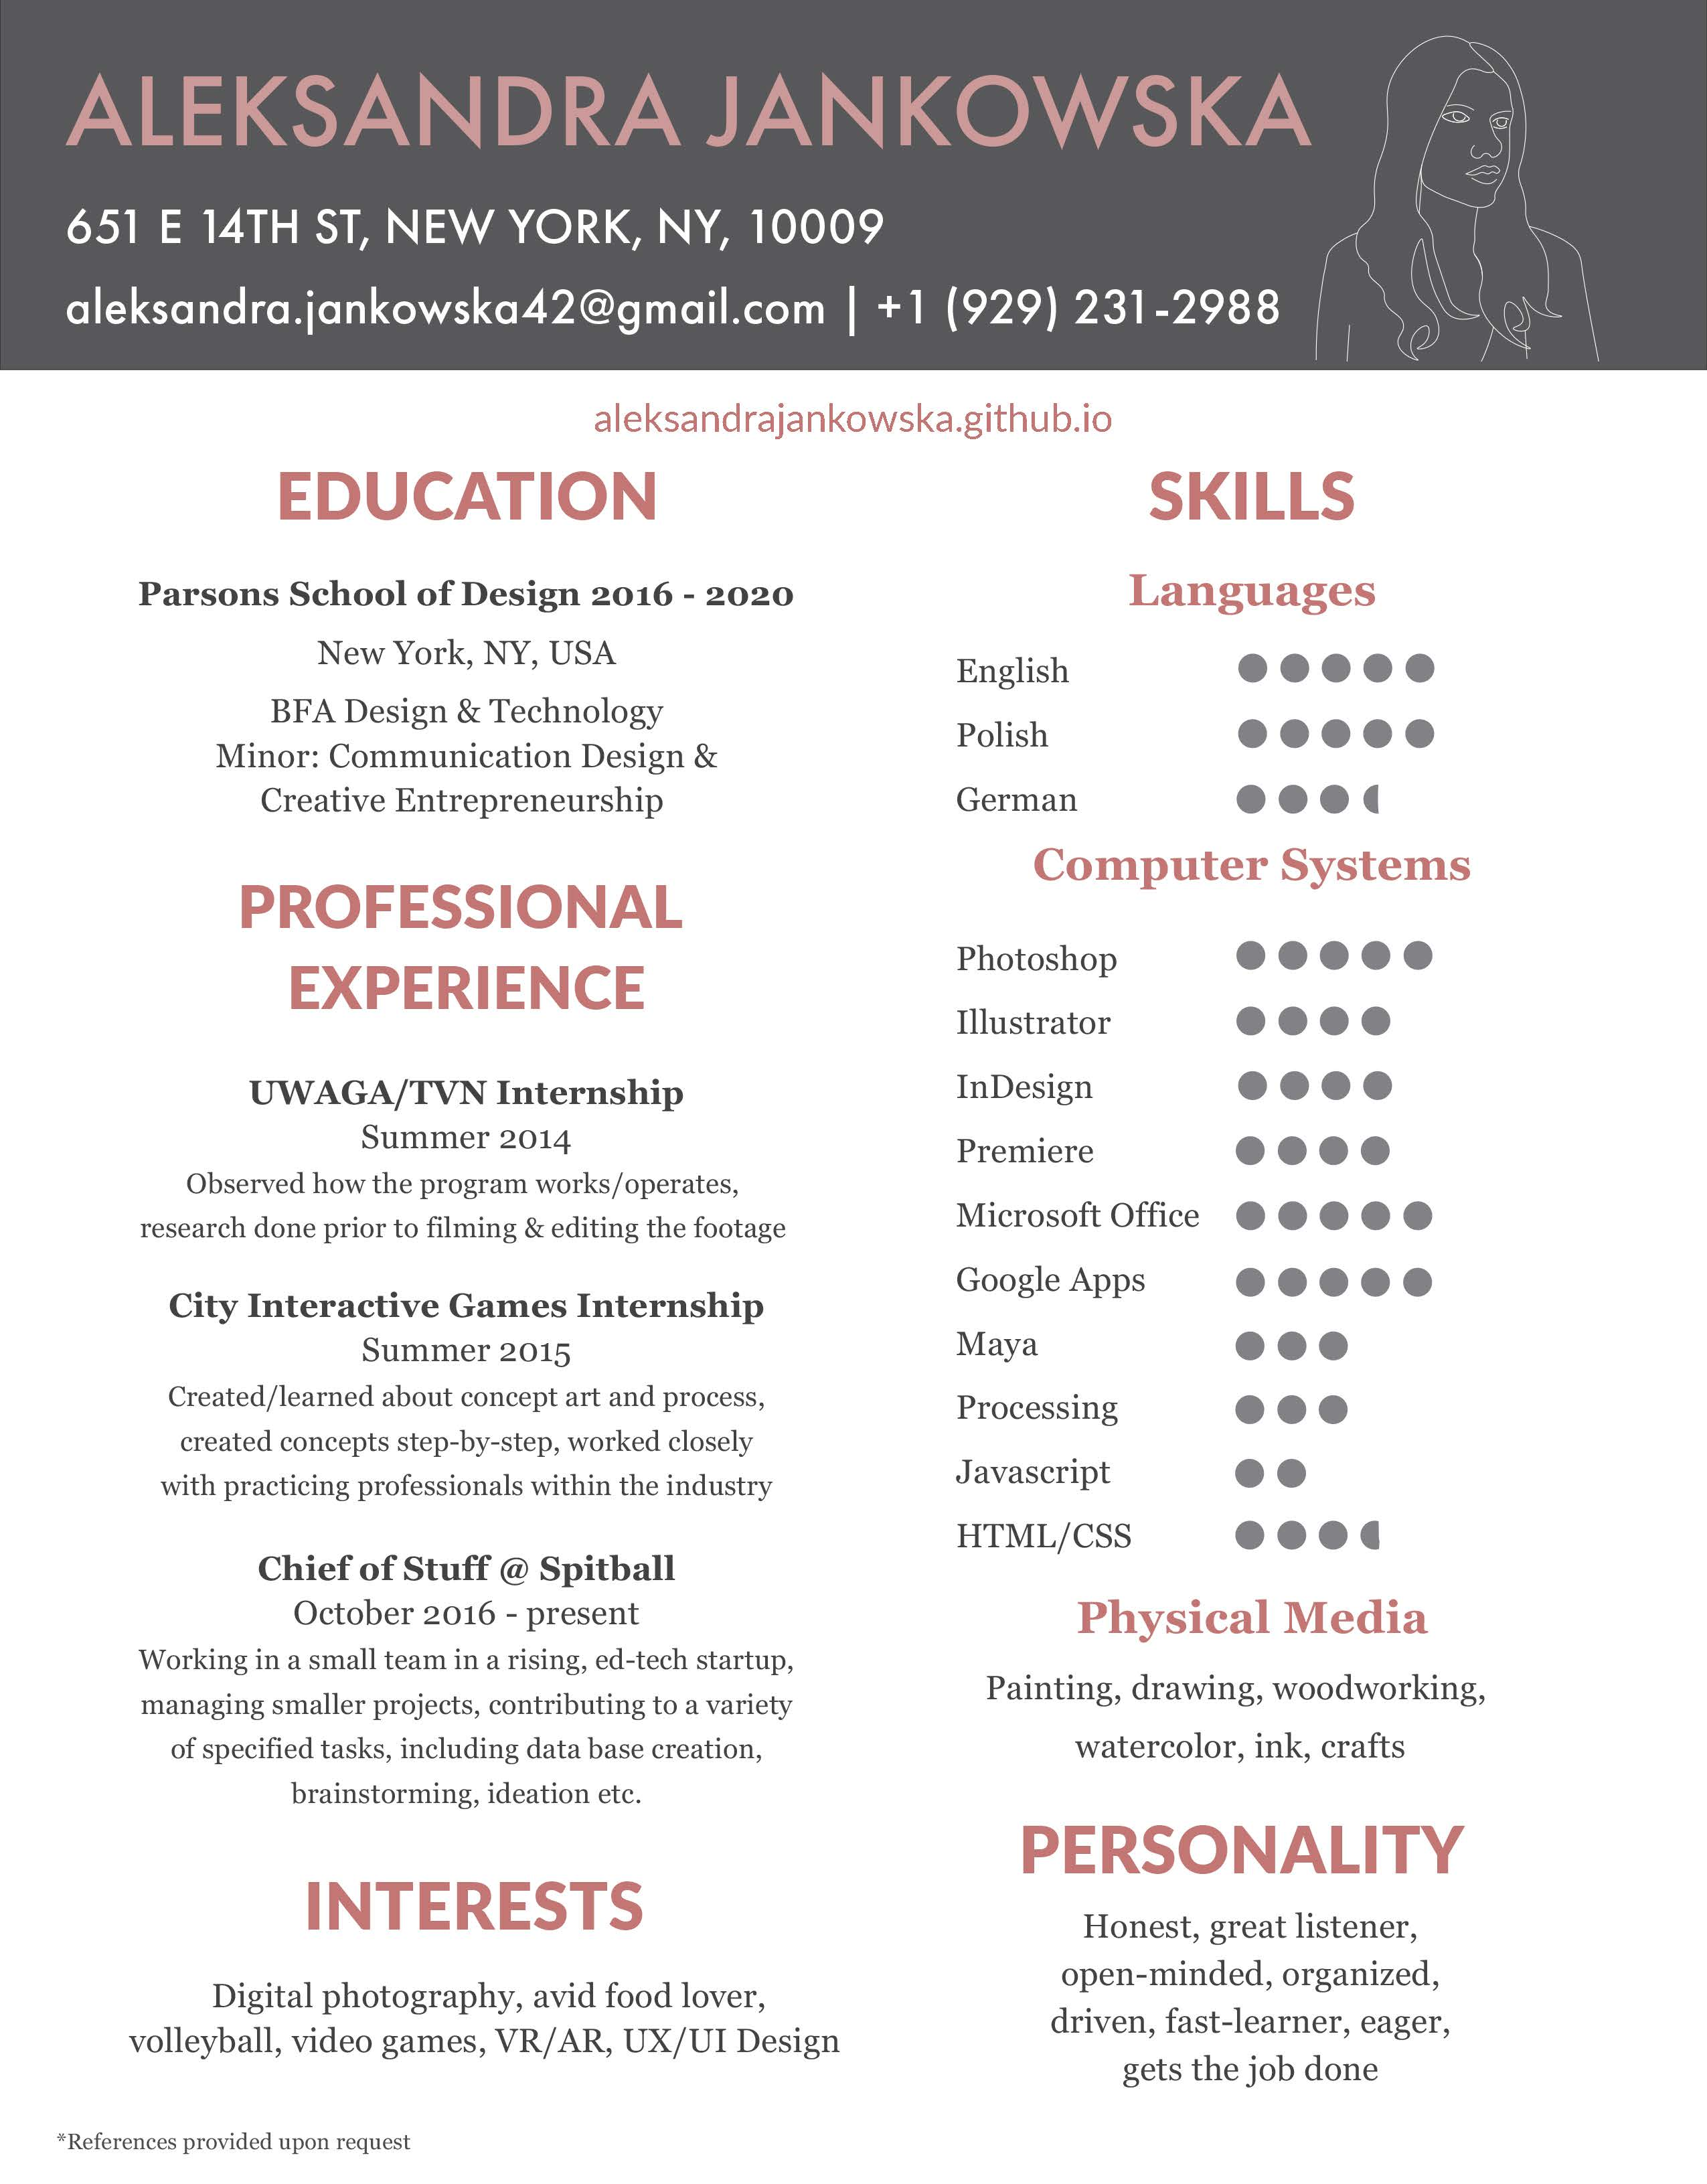 Design Your Resume Cover Letter And Proofread It By Olaj42 Fiverr